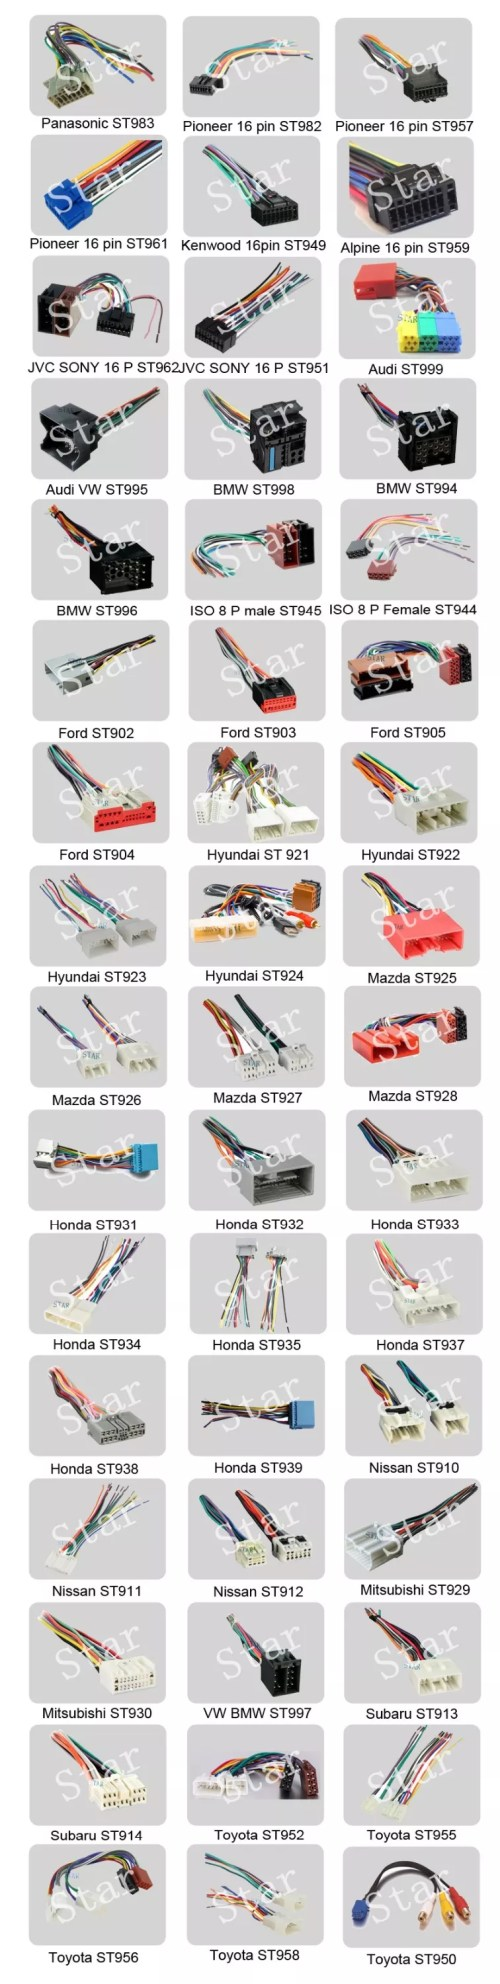 small resolution of 16 pin pioneer car radio stereo iso wiring harness manufacturer